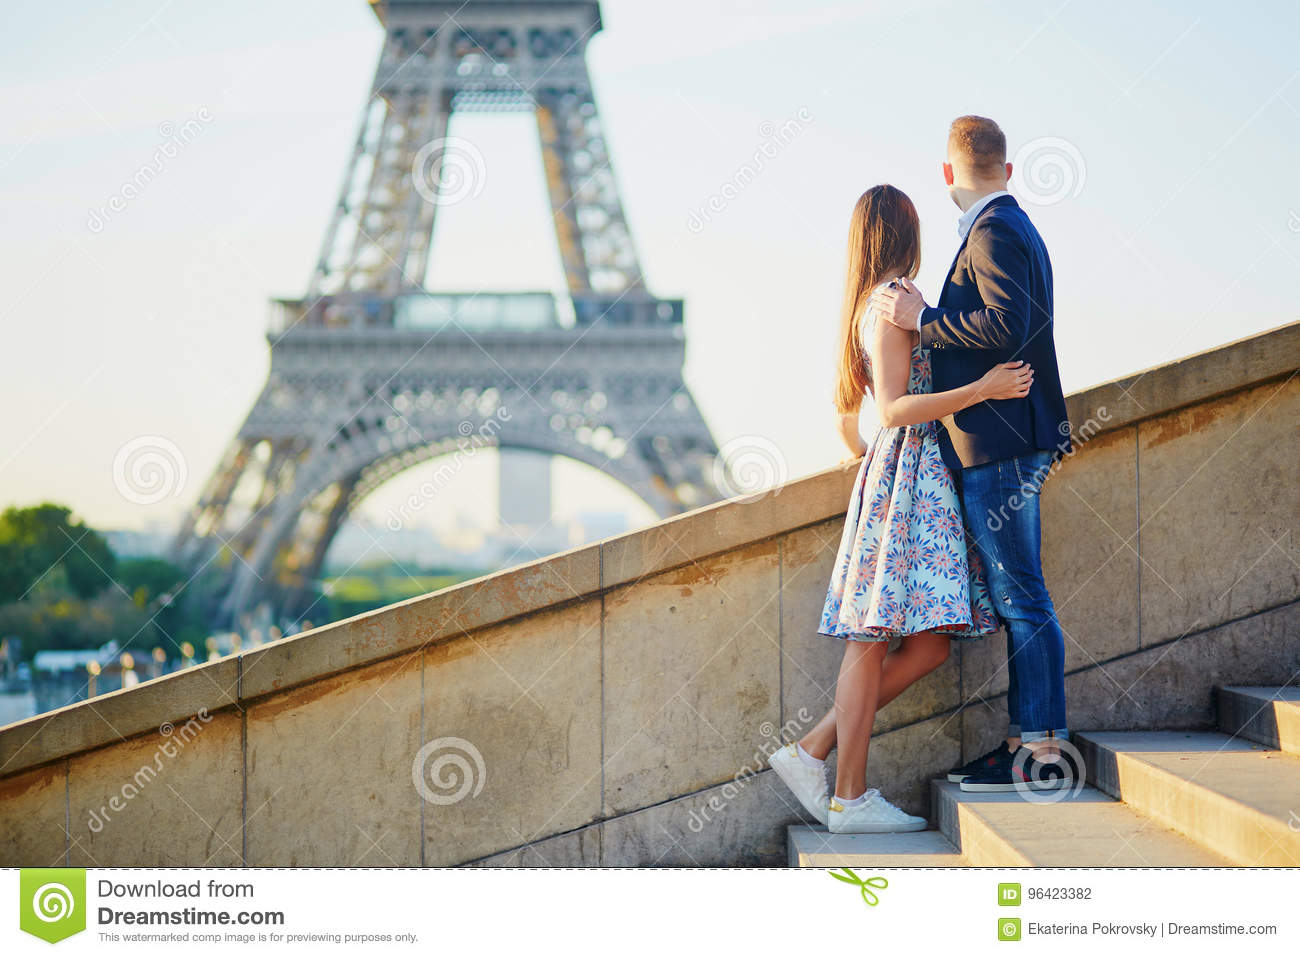 Romantic couple near the Eiffel tower in Paris